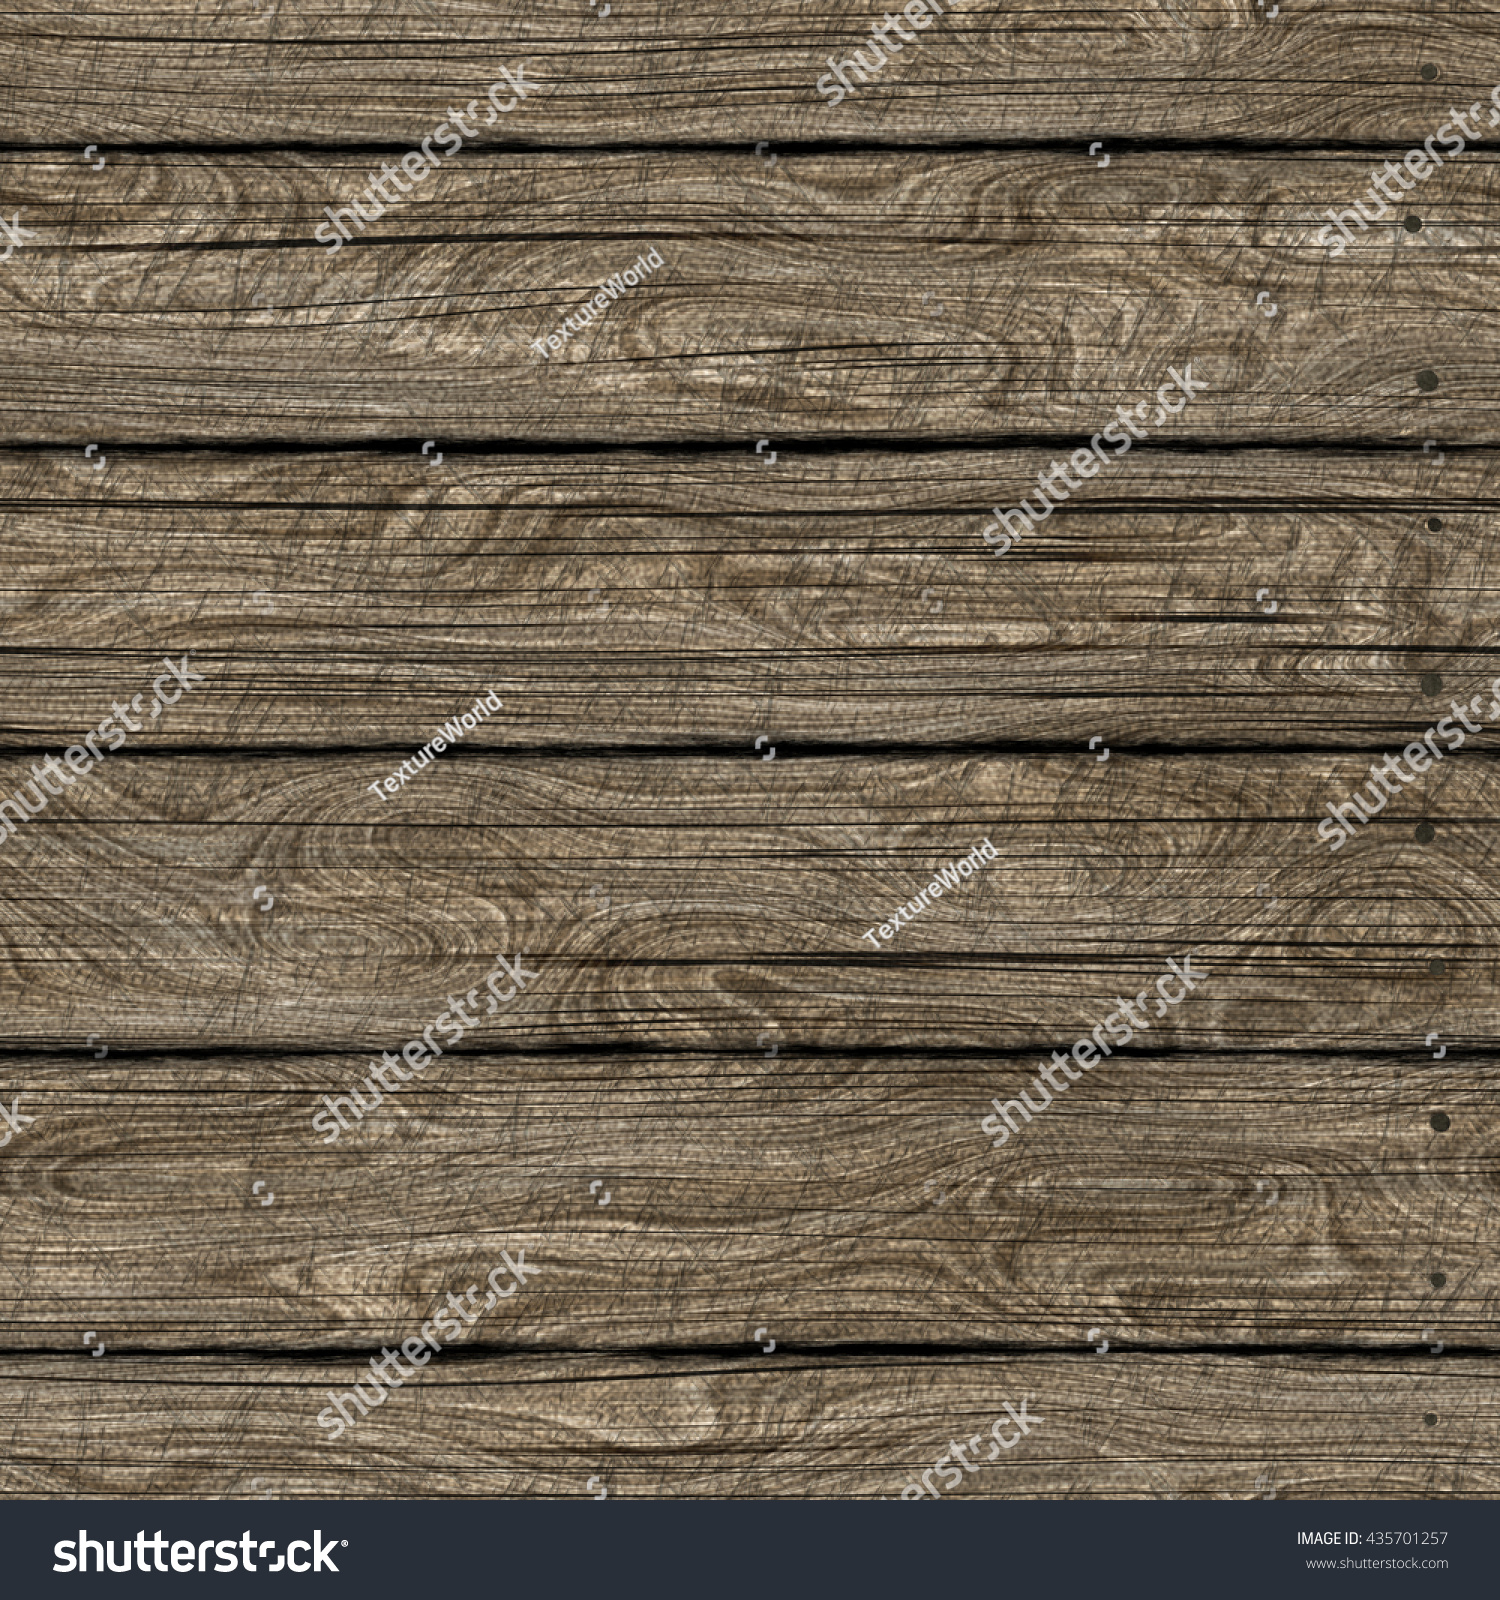 High Quality Hardwood Lumber ~ High quality resolution seamless wood texture dark